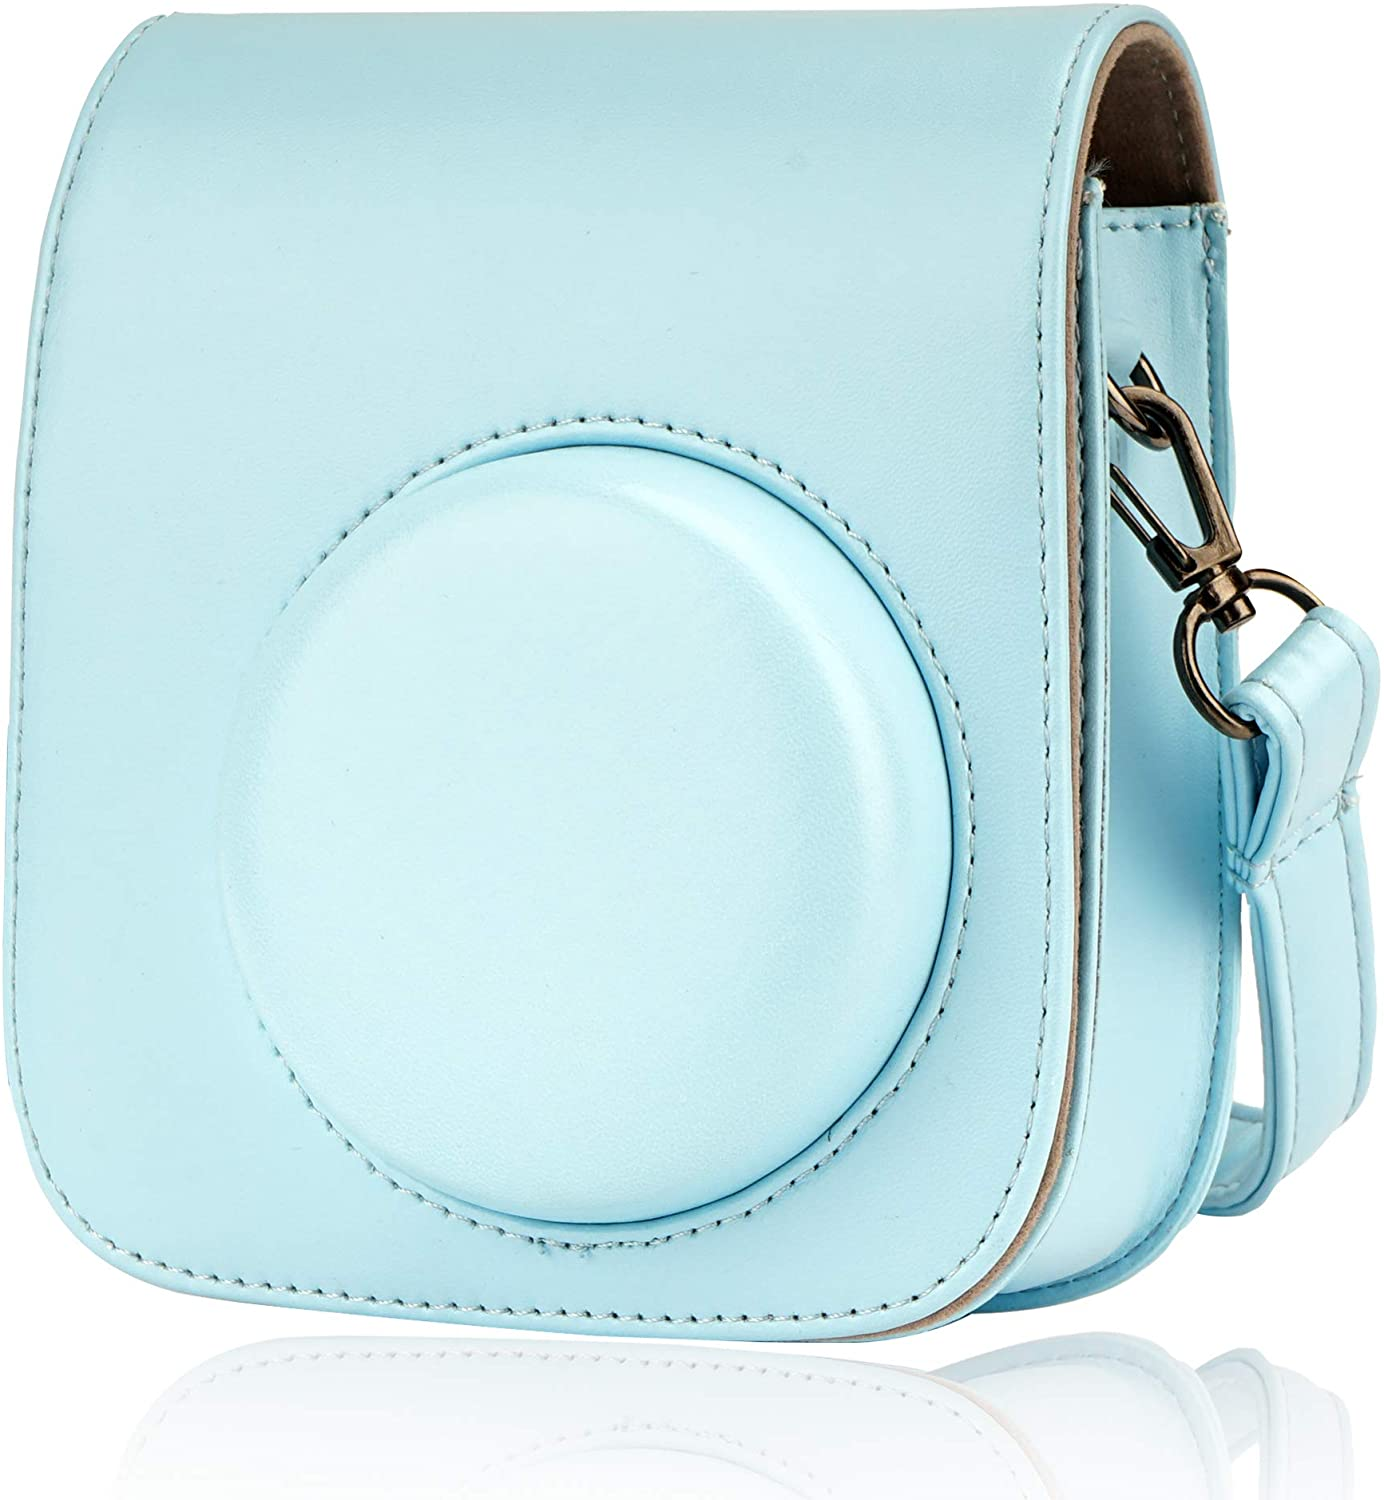 Camera Case fit to Instax Mini 11 Instant Camera, Alohallo PU Leather Protective Case with Removable Strap - Sky Blue